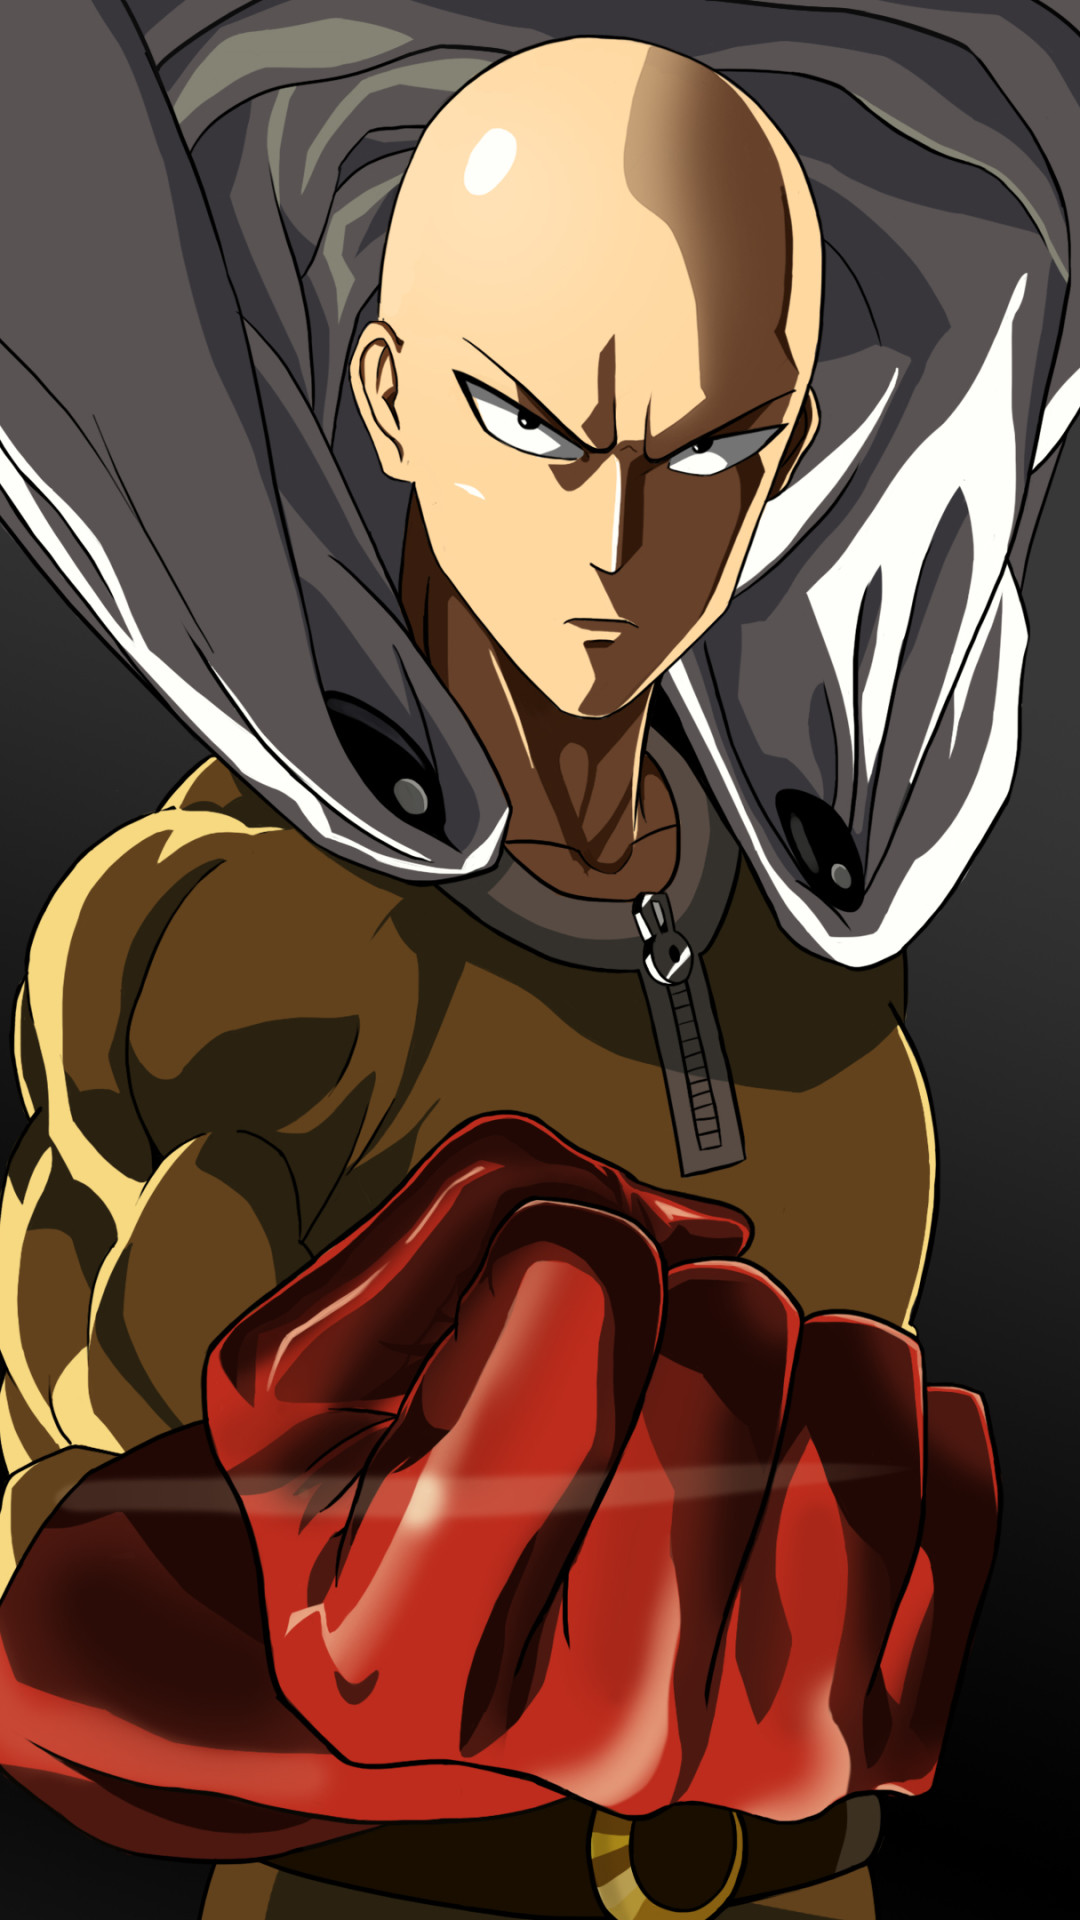 One Punch Man Saitama - One Punch Man Saitama Wallpapers (76+ images)